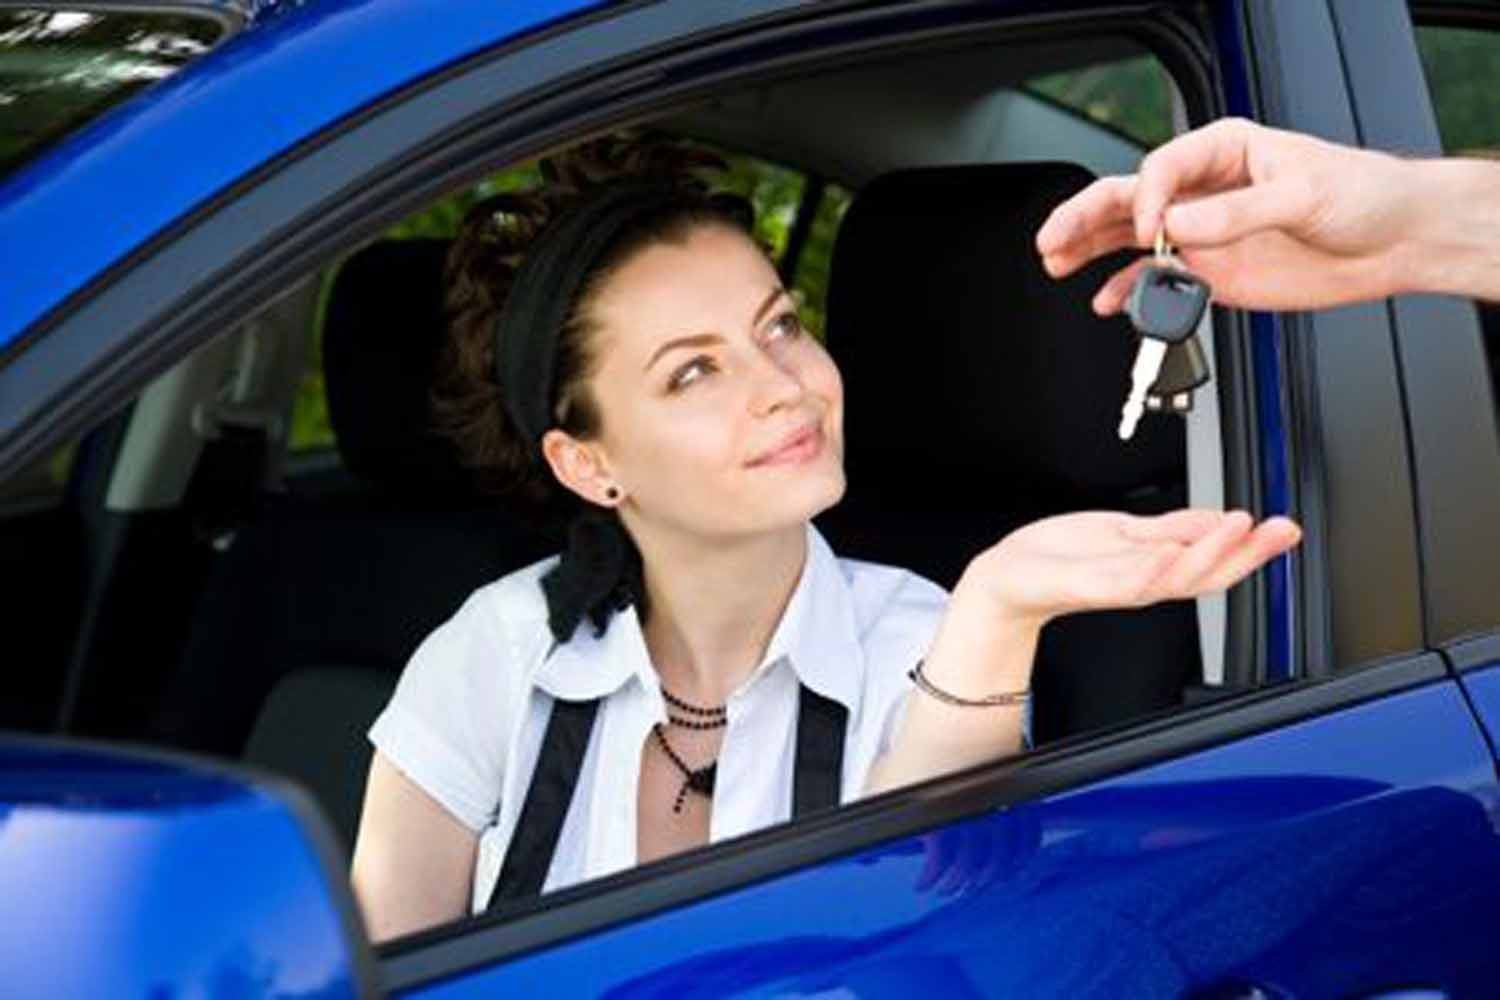 Woman Sitting In Car Receiving Car Keys